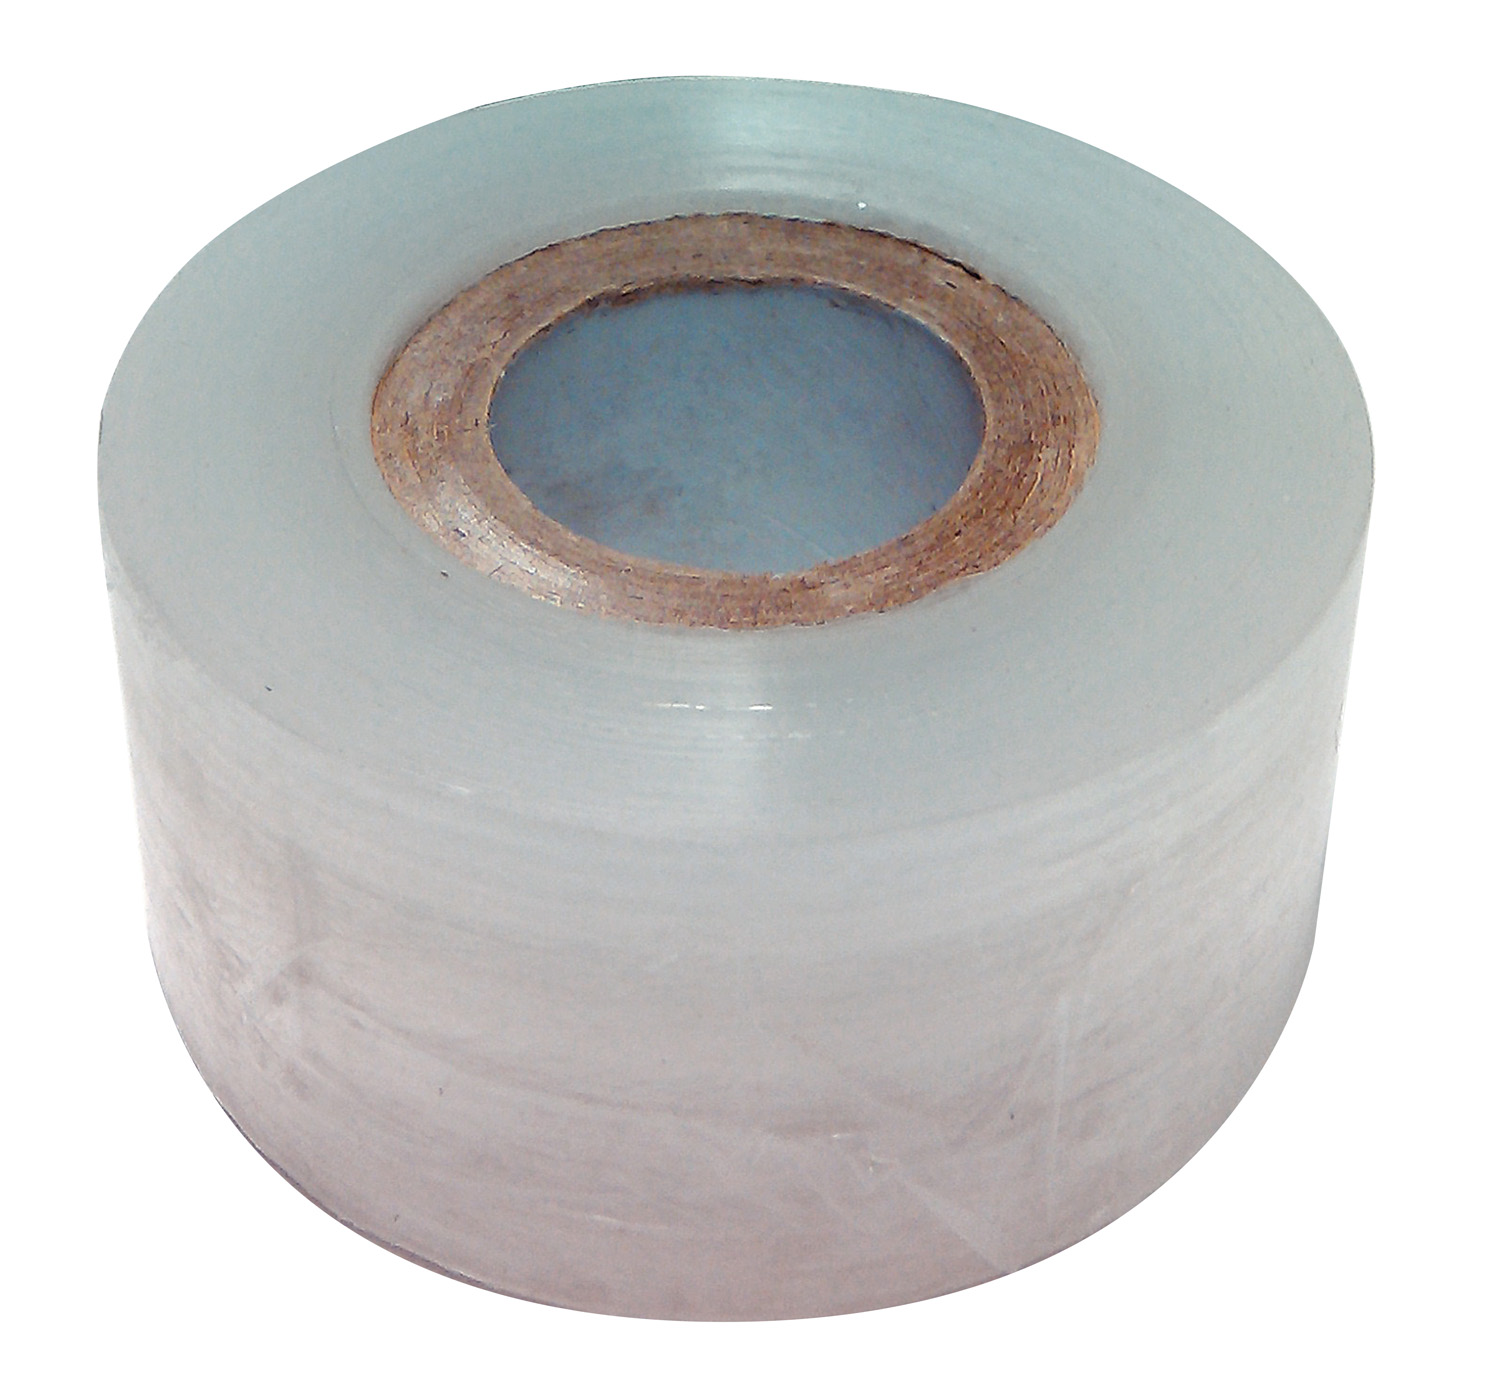 Zenport Grafting Tape ZJ825 Film Grafting Tape, 1.2-Inches Wide by 426-Feet Long